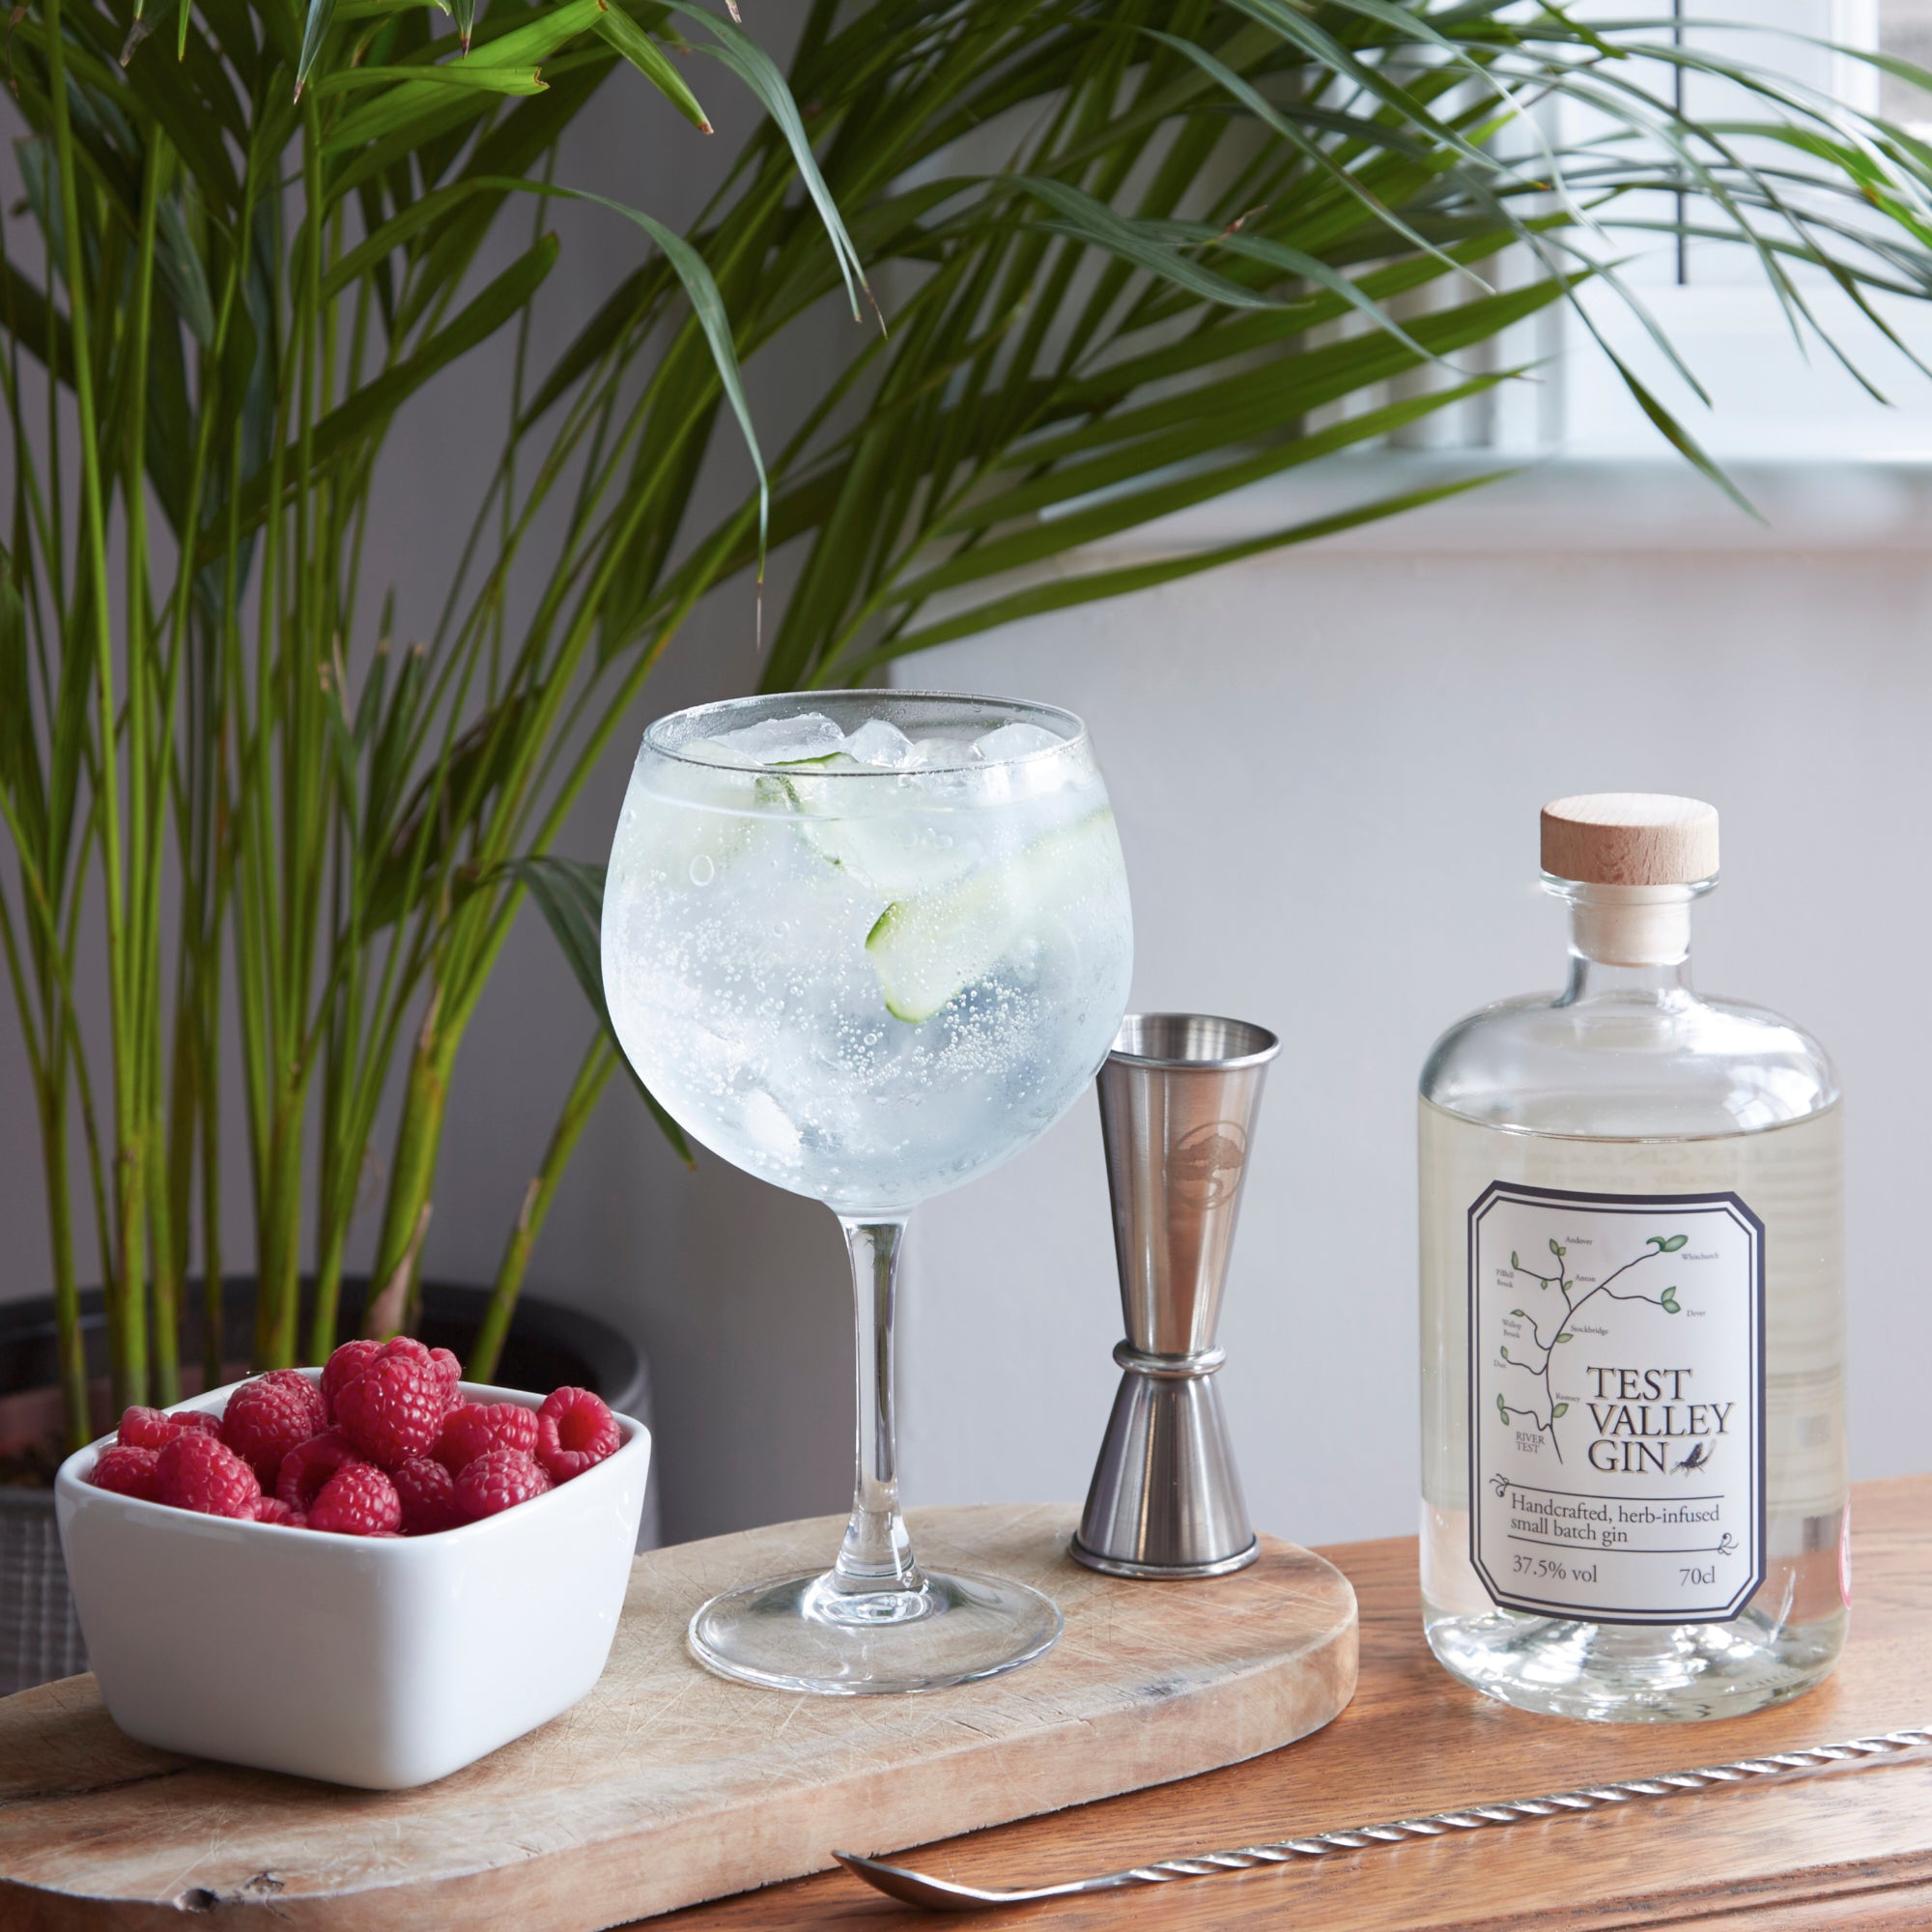 Test Valley Gin, Wessex Spirits sold by Lillywhite & Brown